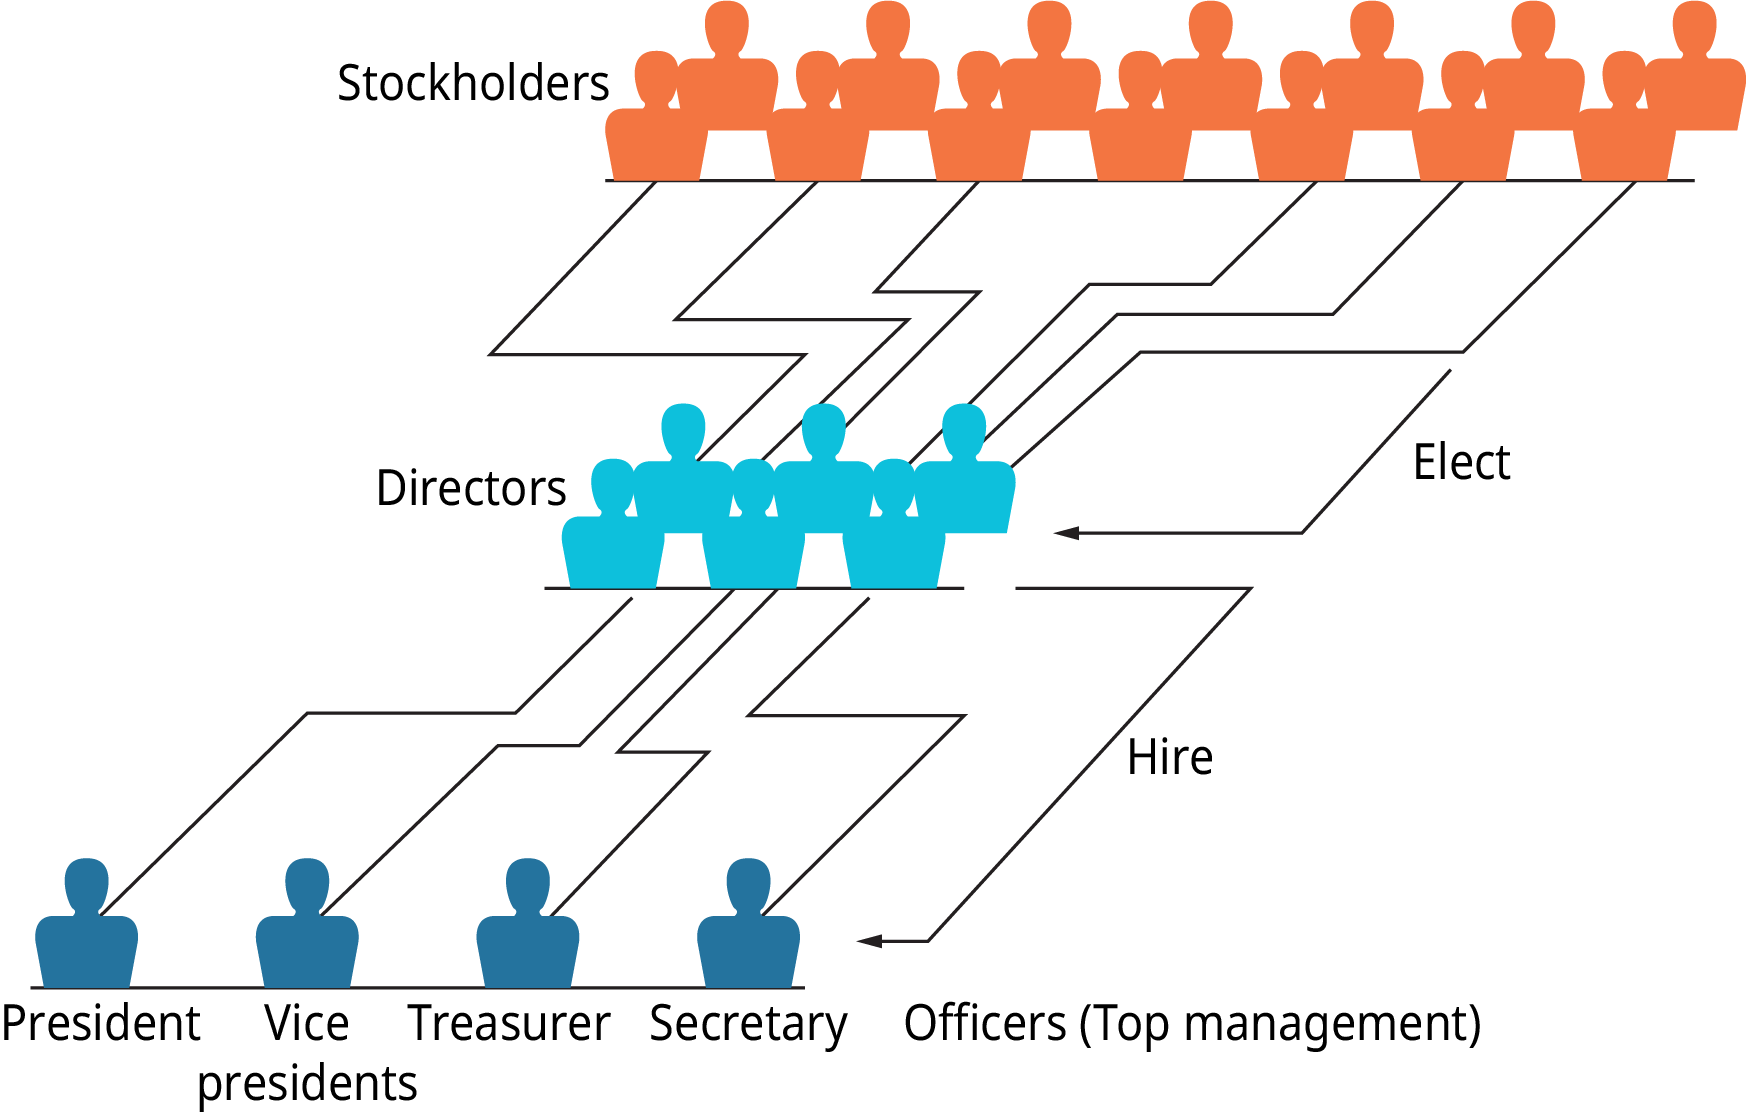 Illustration shows that stockholders elect the directors, and the directors hire the officers, or top management. Top management consists of secretary, treasurer, vice presidents and president.